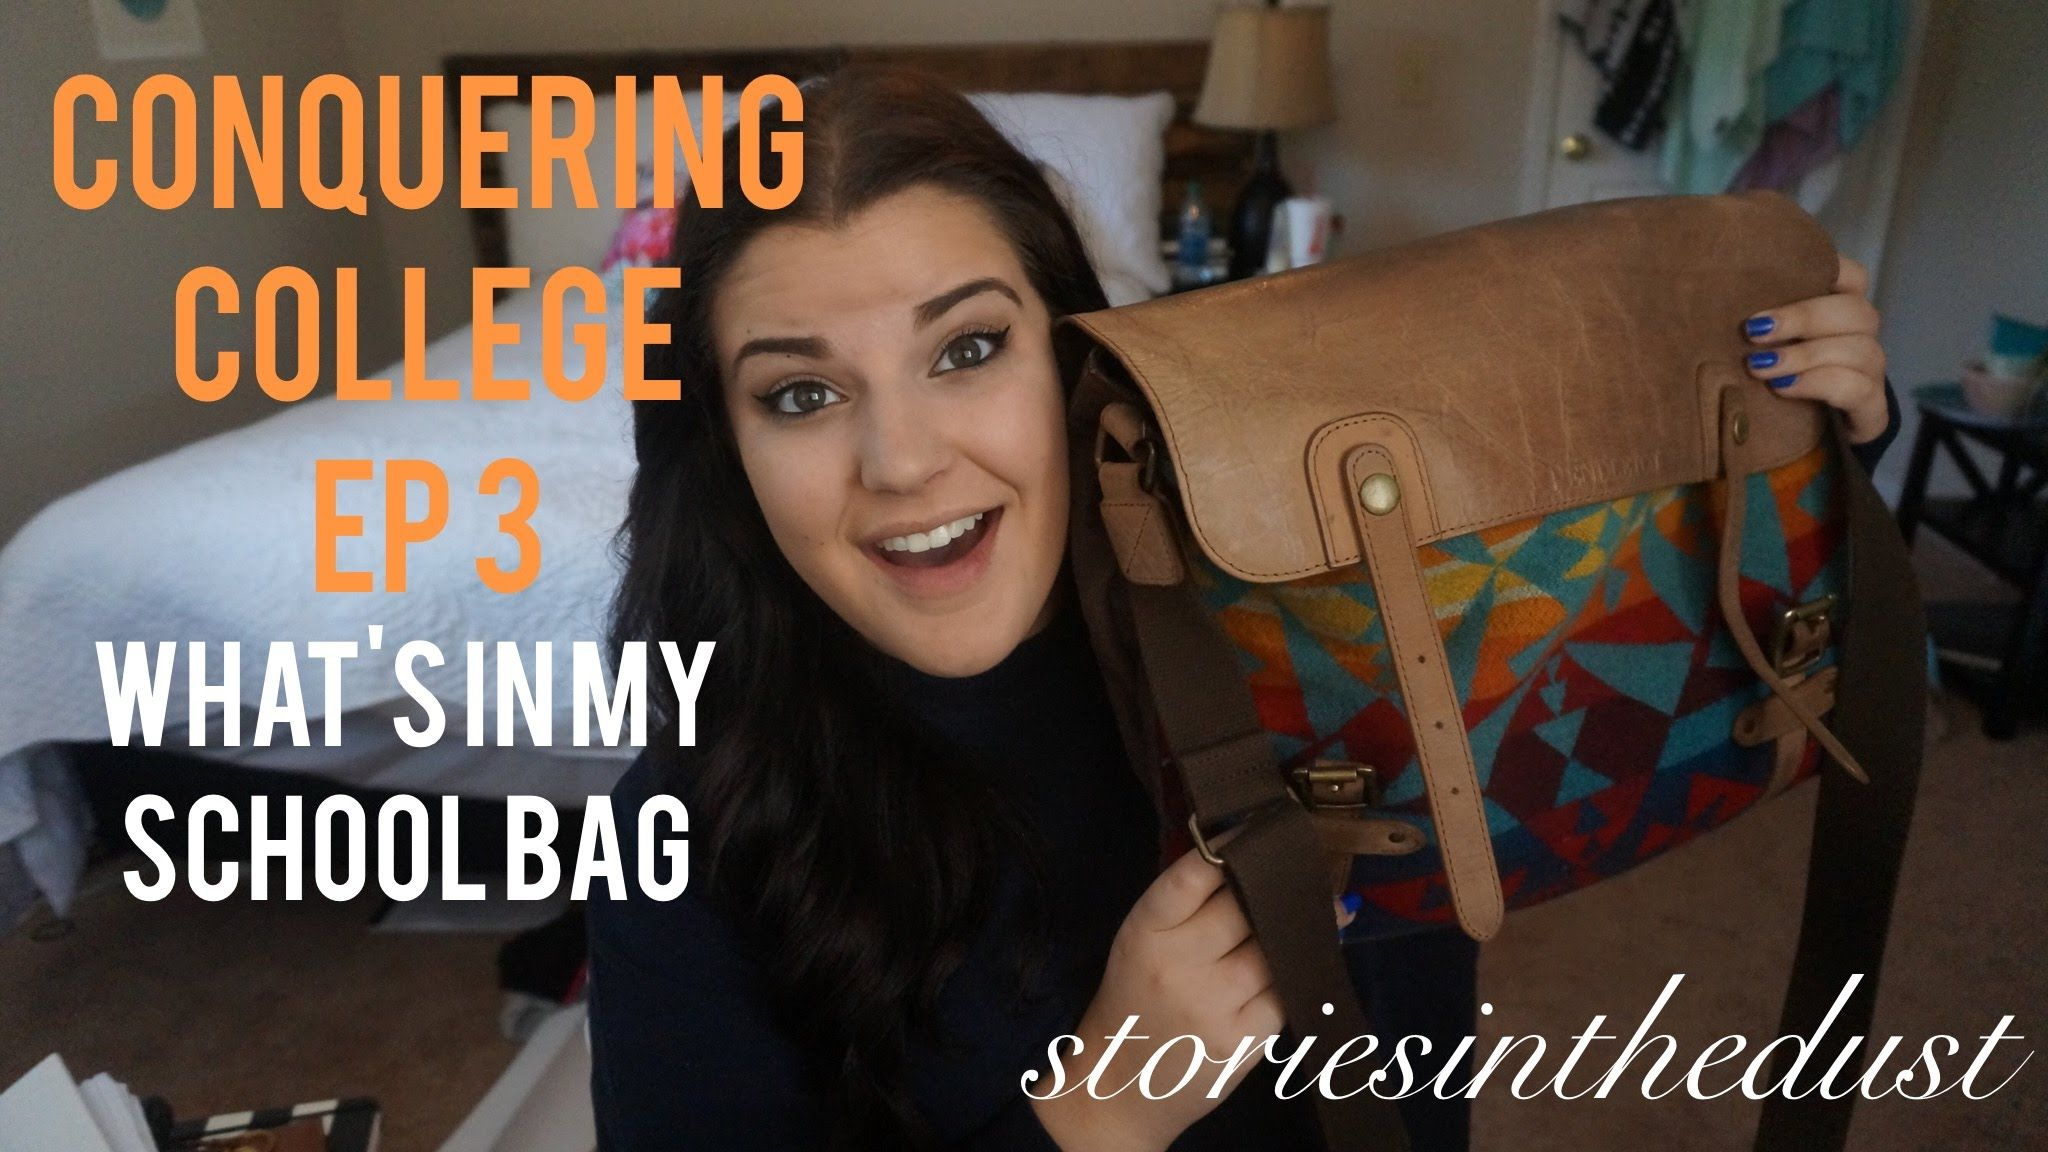 CONQUERING COLLEGE EP 3: What's In My School Bag | storiesinthedust